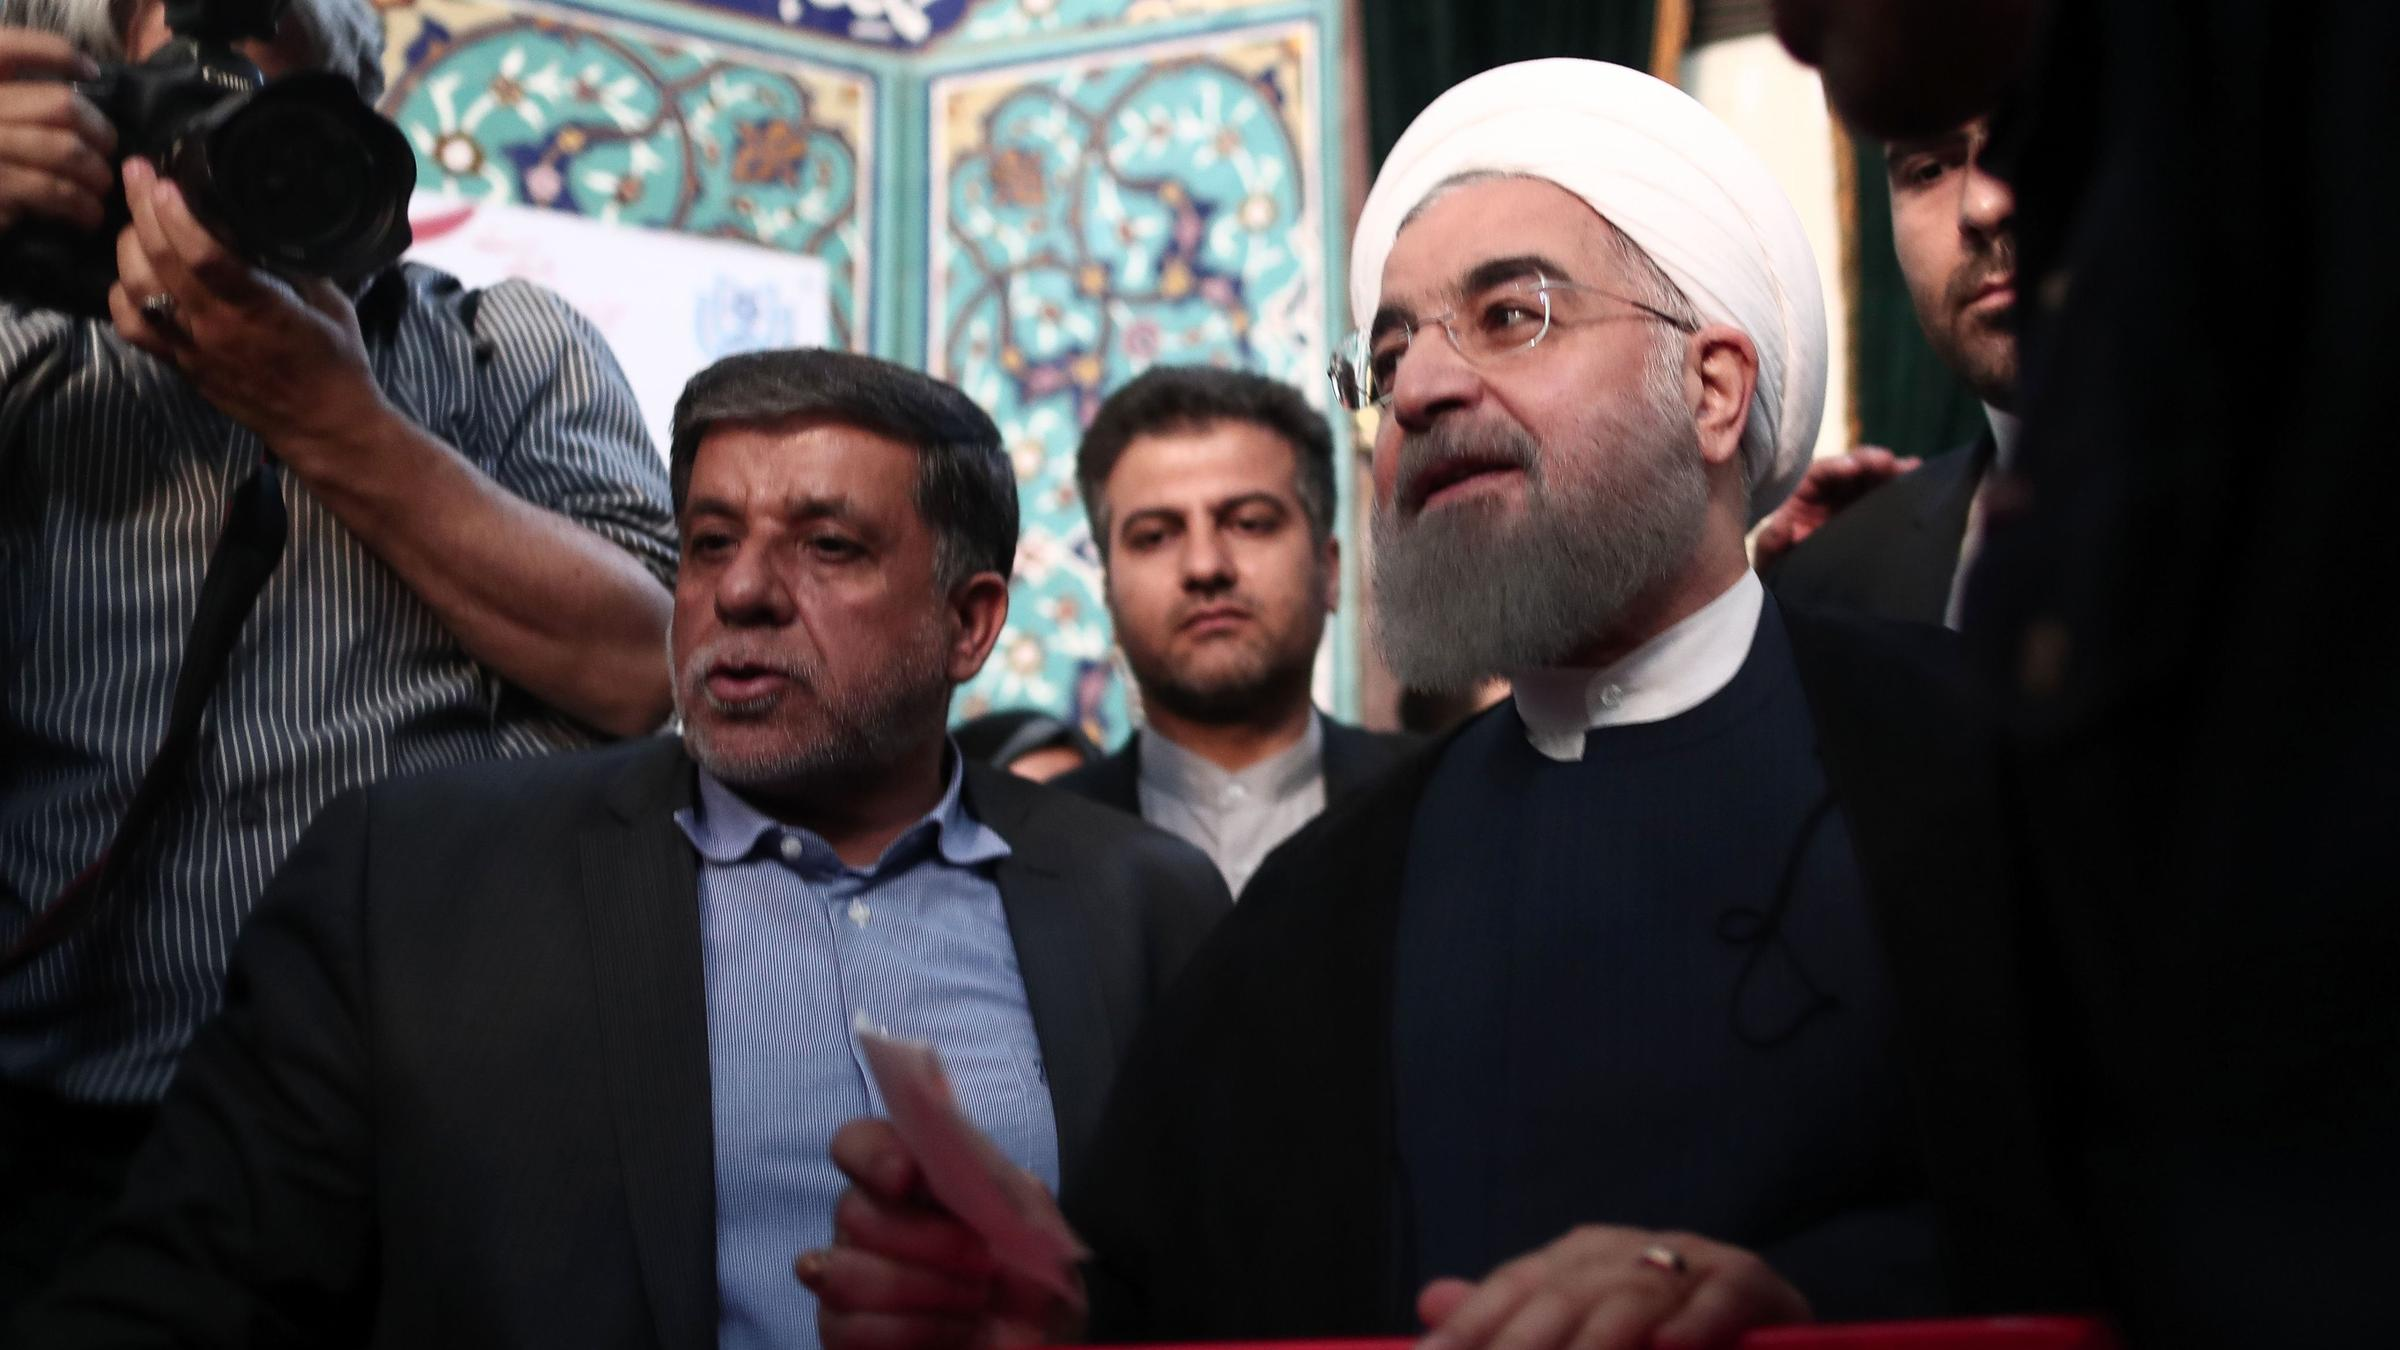 In victory for moderates, Iranian President Hassan Rouhani wins re-election